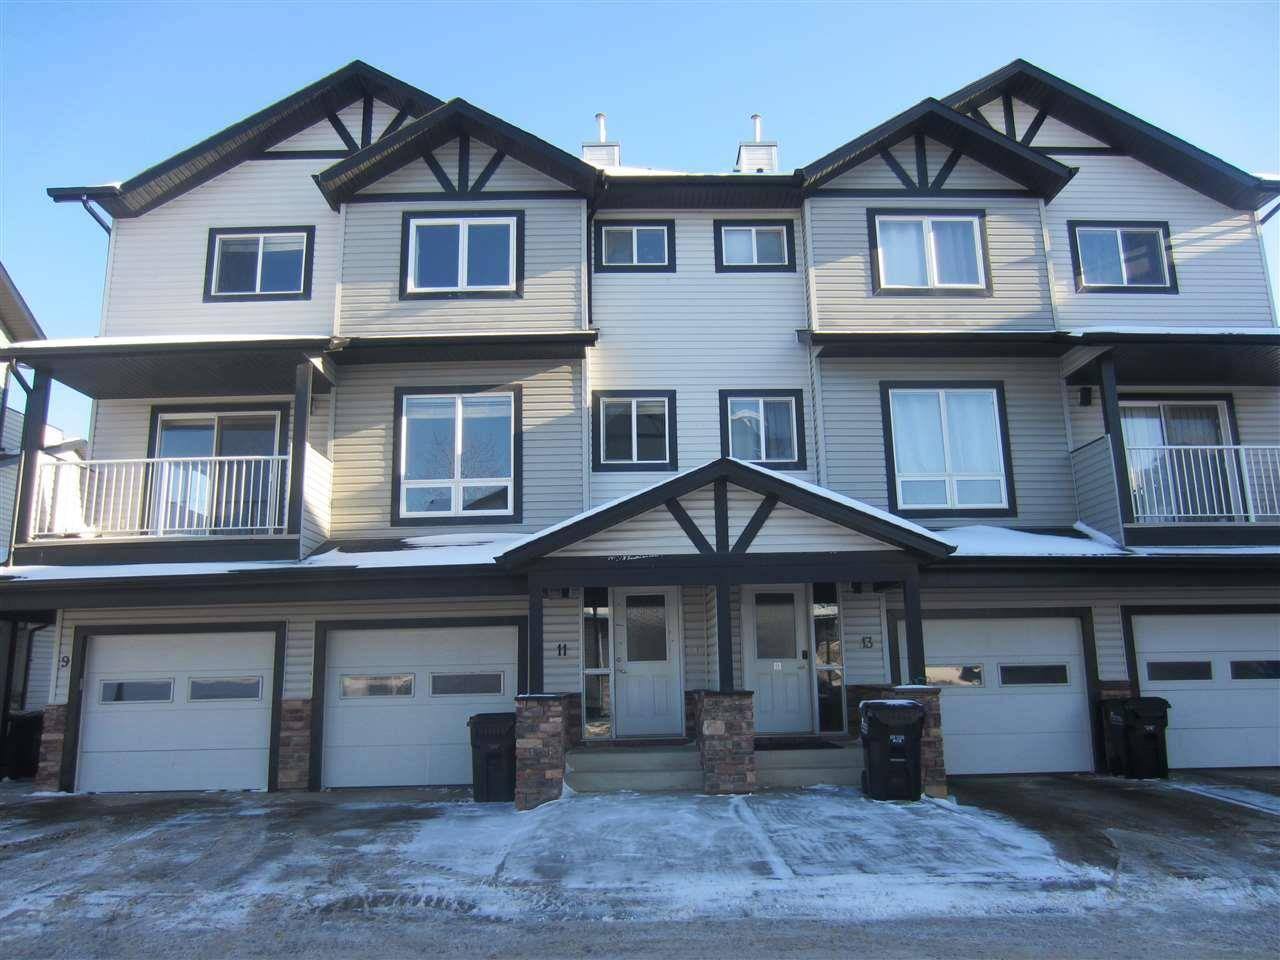 Townhouse for sale at 11 Cloverbar Ln Unit 11 Sherwood Park Alberta - MLS: E4185186